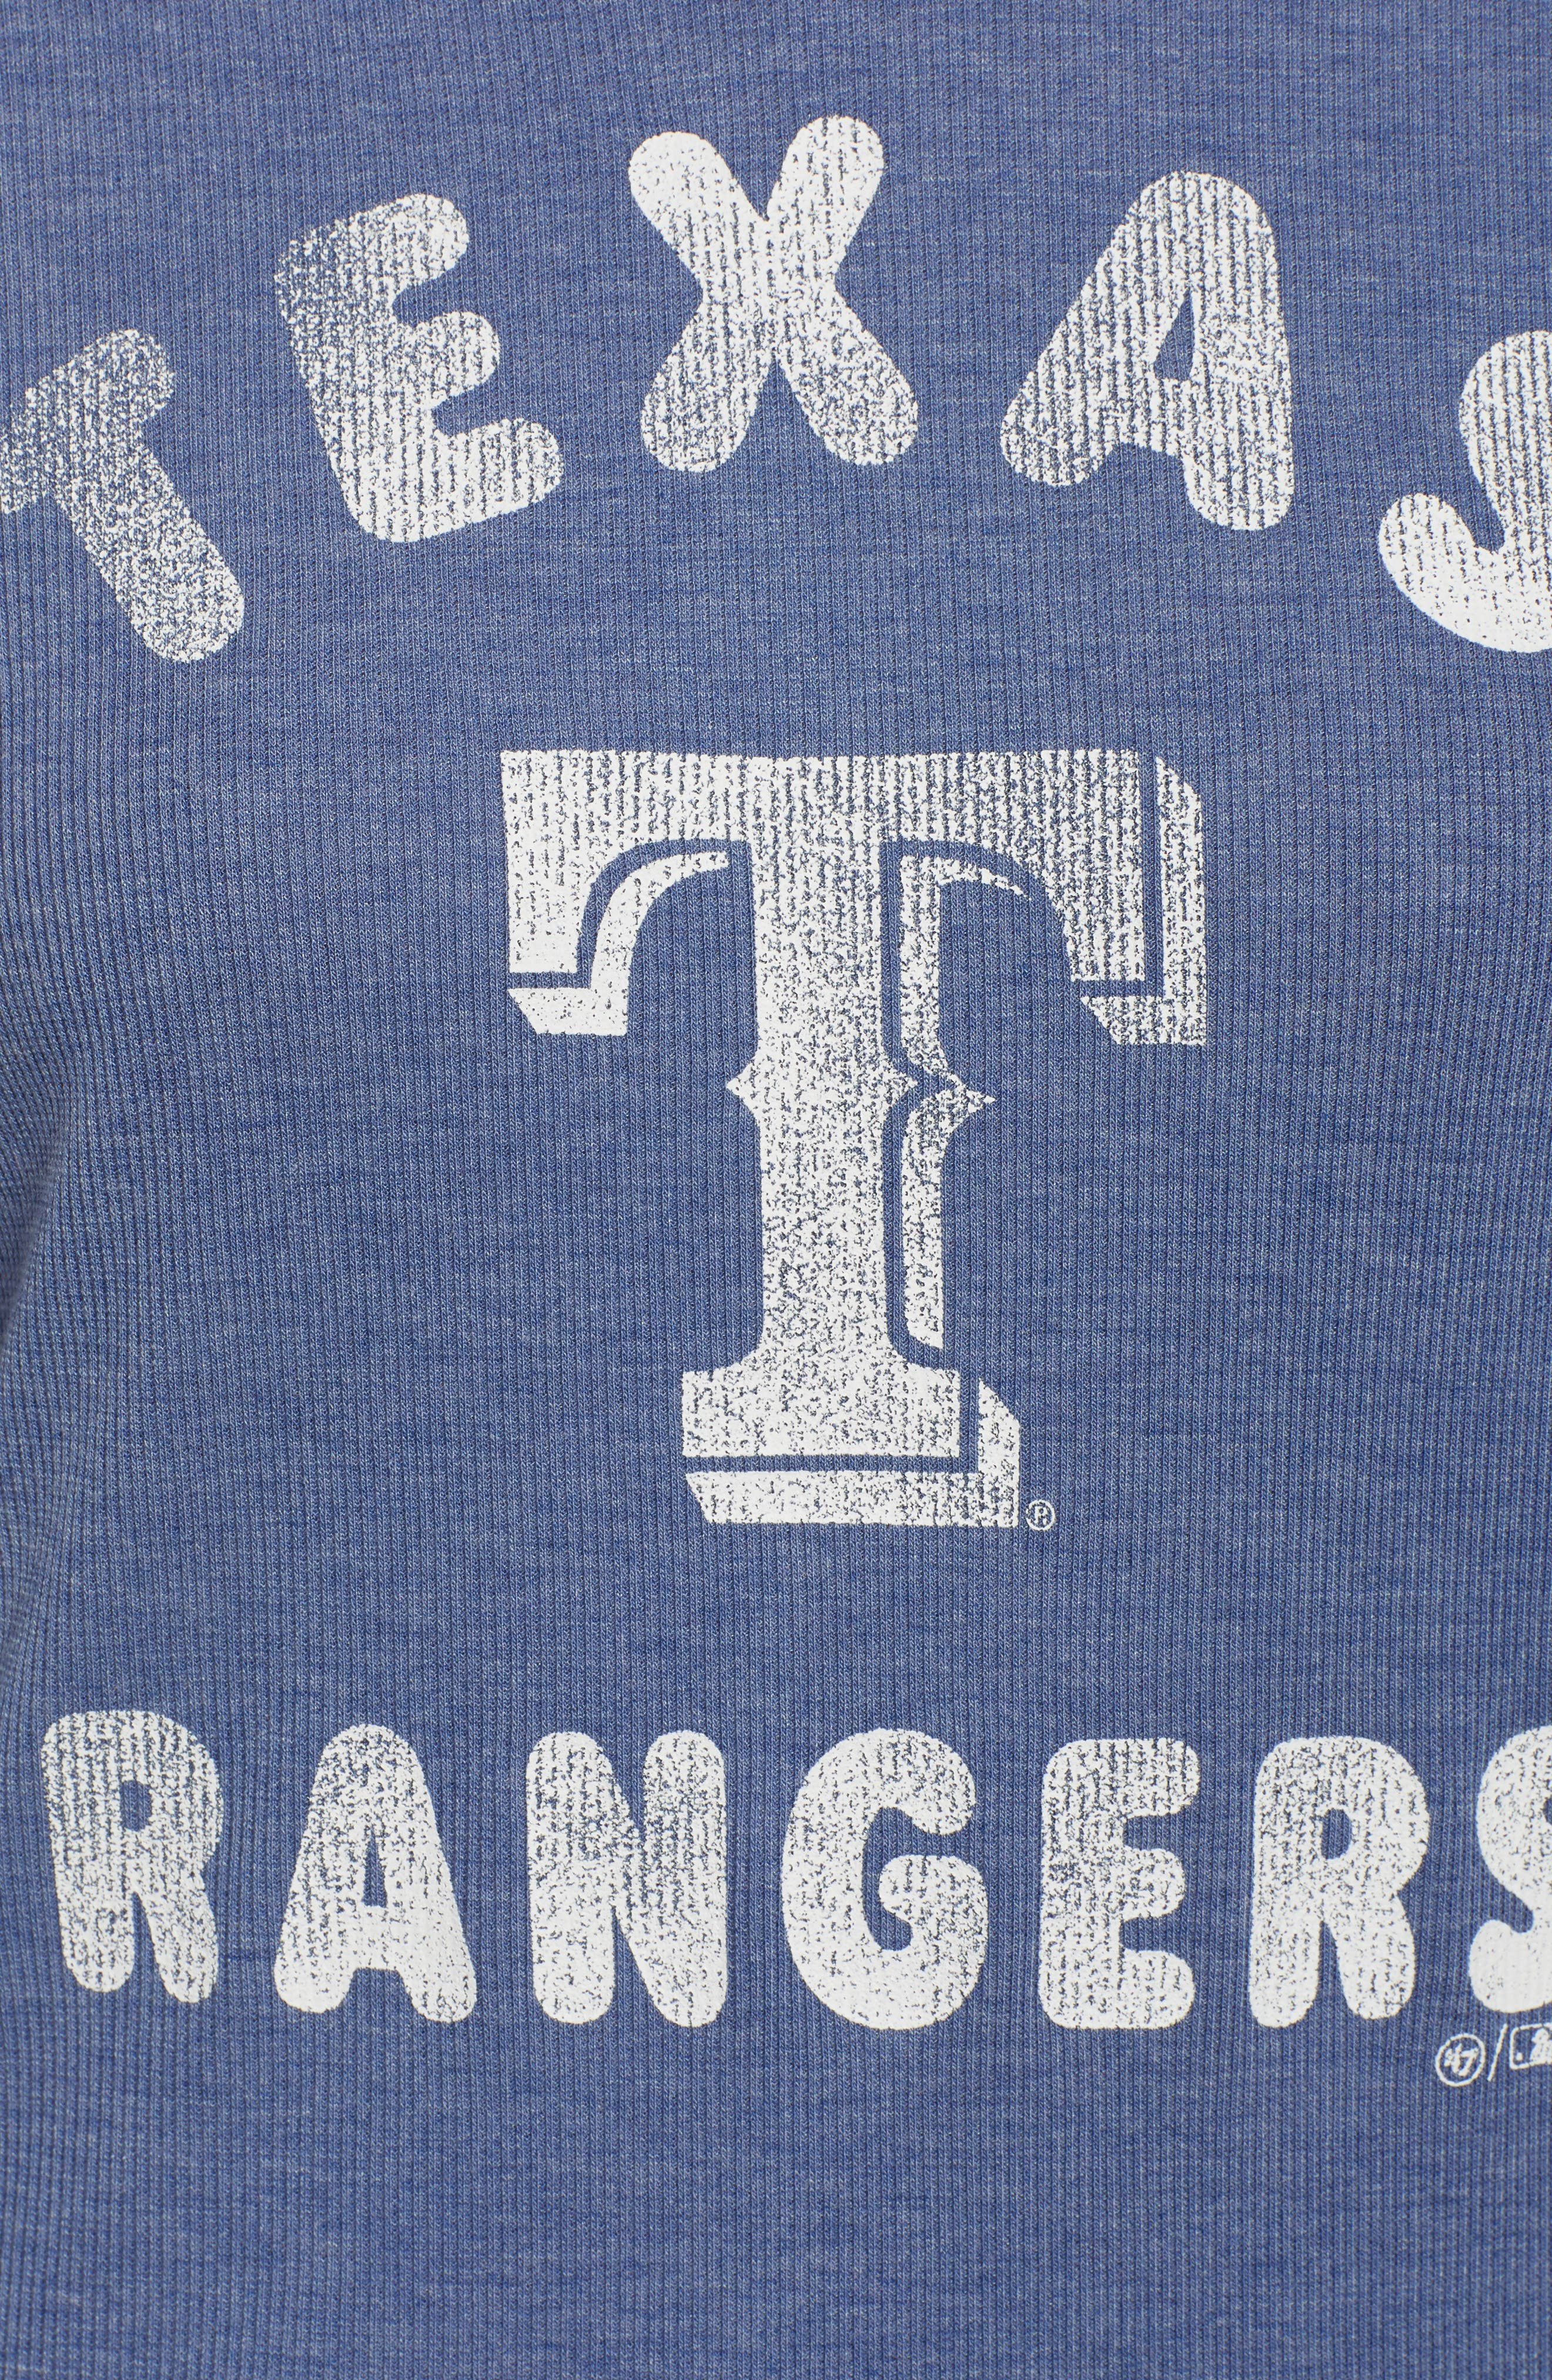 Campbell Texas Rangers Rib Knit Hooded Top,                             Alternate thumbnail 6, color,                             400